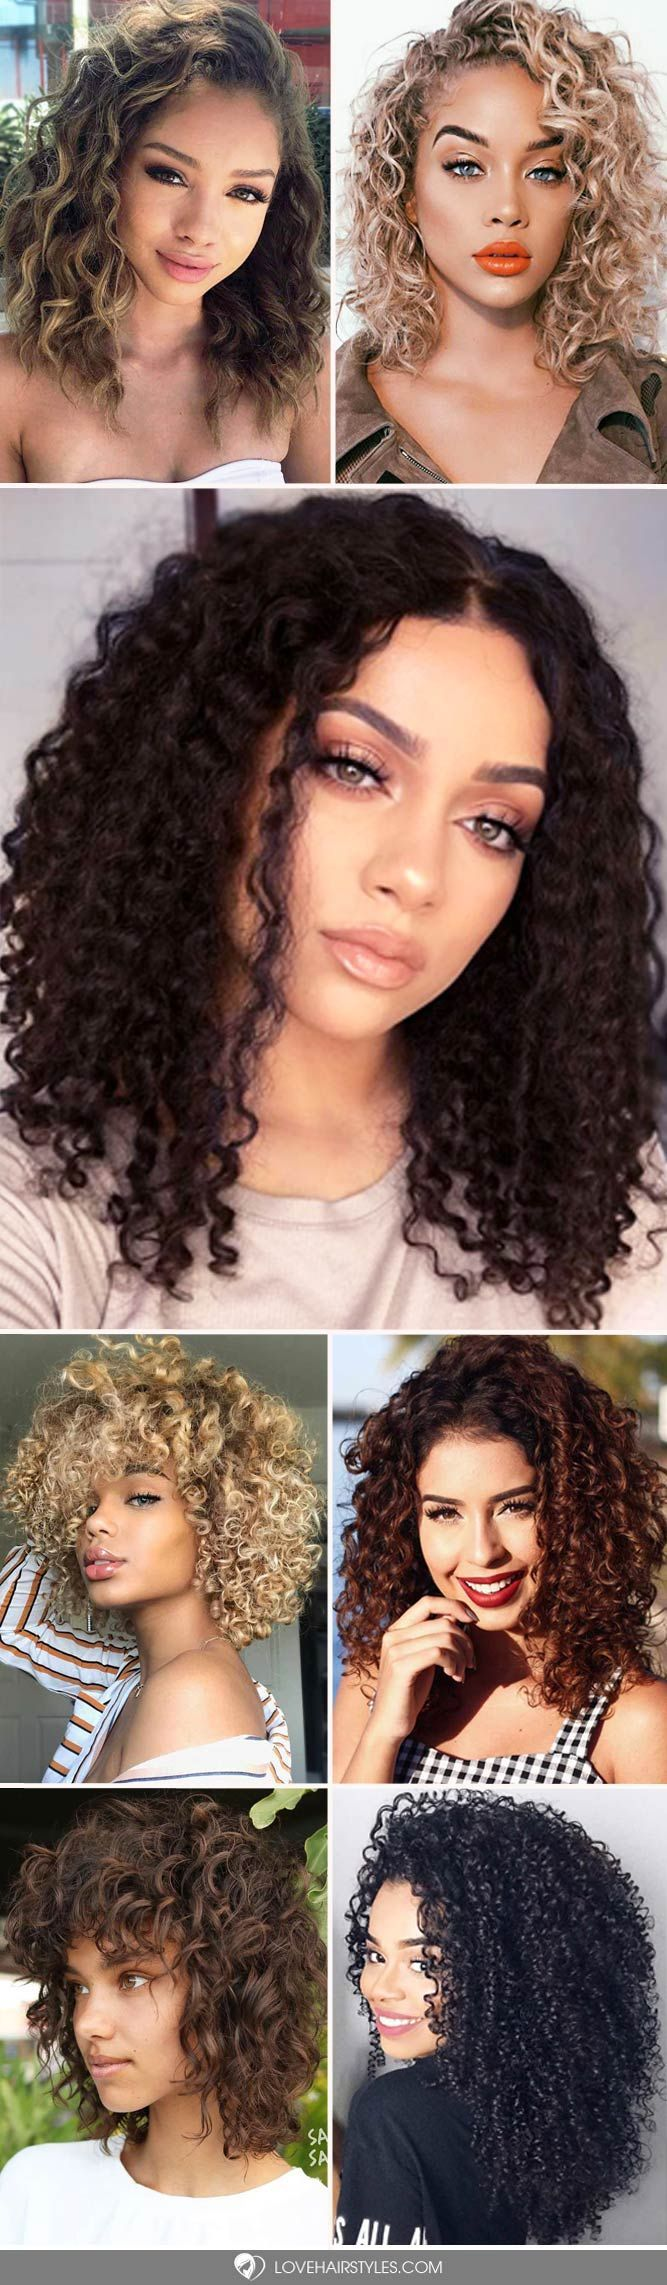 Curly hair always looks adorable, and we collected hairstyles for curly hair to prove you that. We are sure you will save many pics for later! #curlyhair #curlyhairstyles #hairstyles